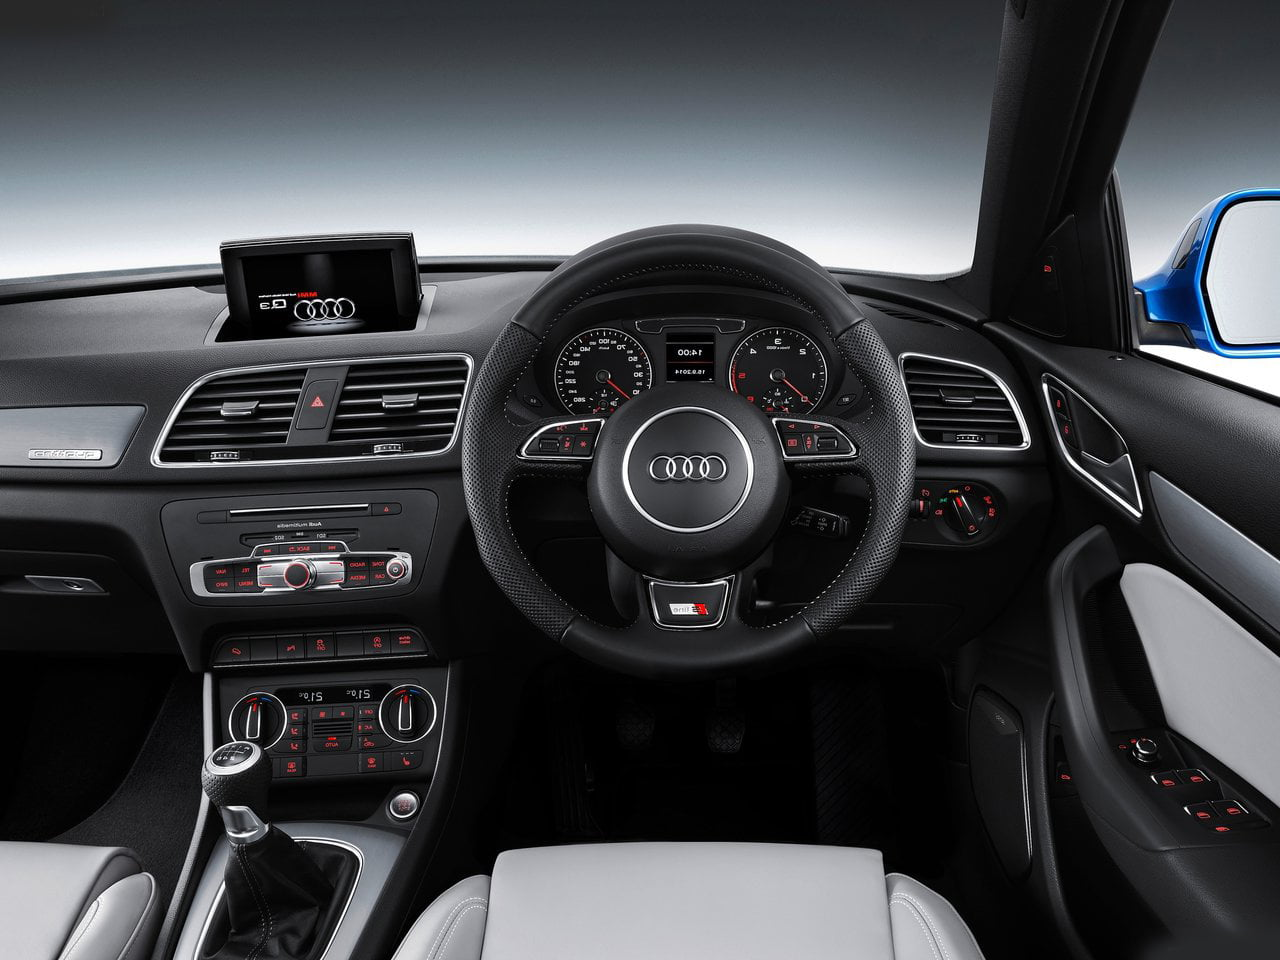 2015 model audi q3 india launch details price pics specs. Black Bedroom Furniture Sets. Home Design Ideas